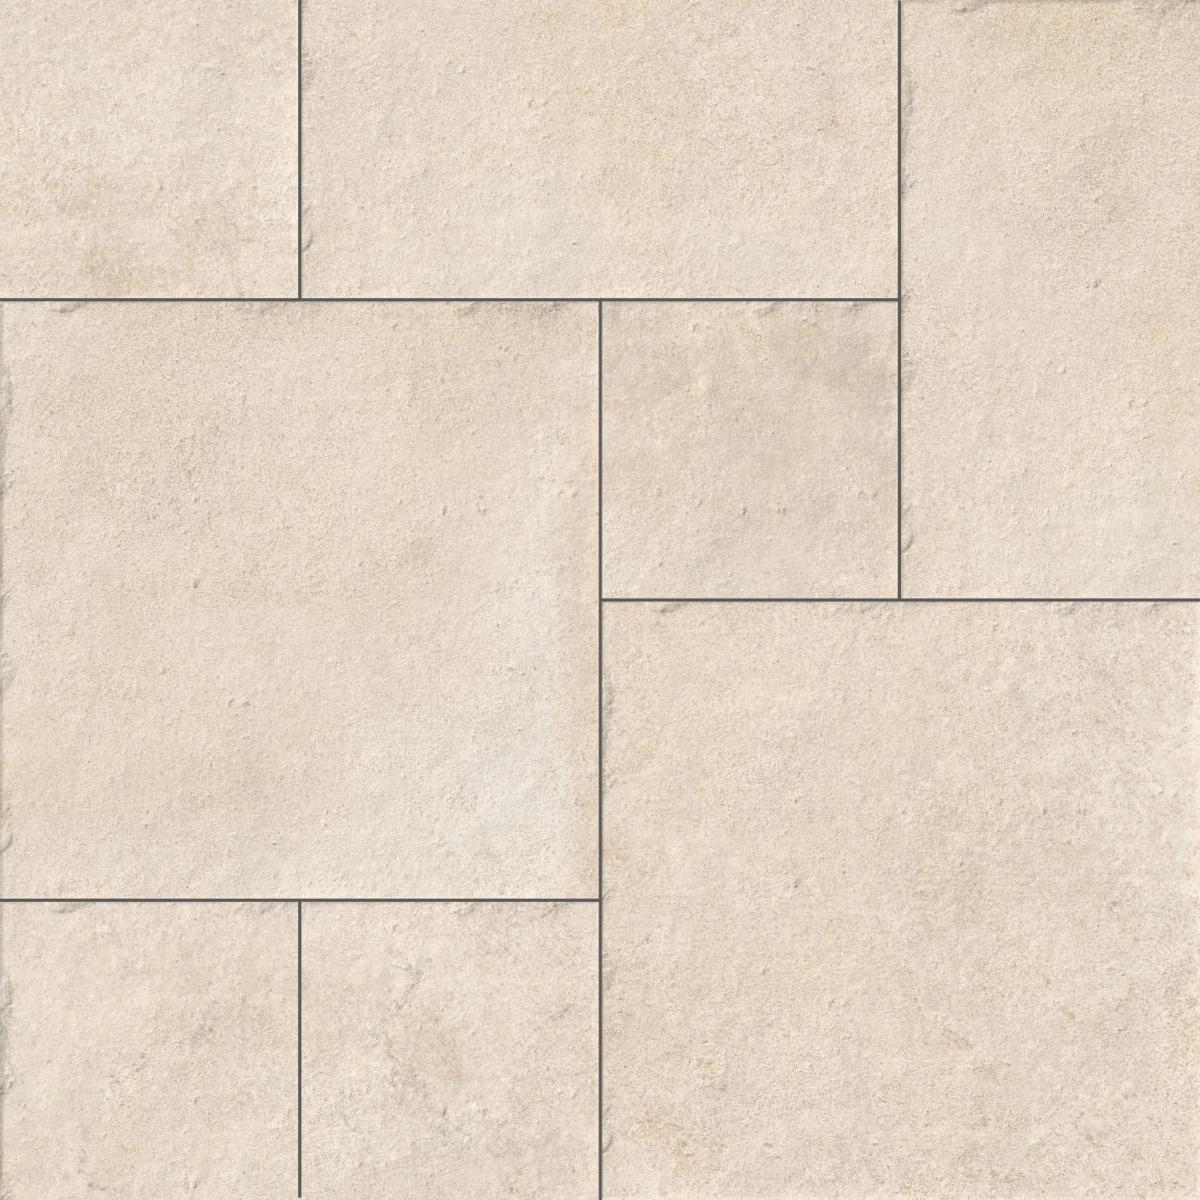 Codicer Arizona Desert Floor Tile Multisize Tiles Ahead